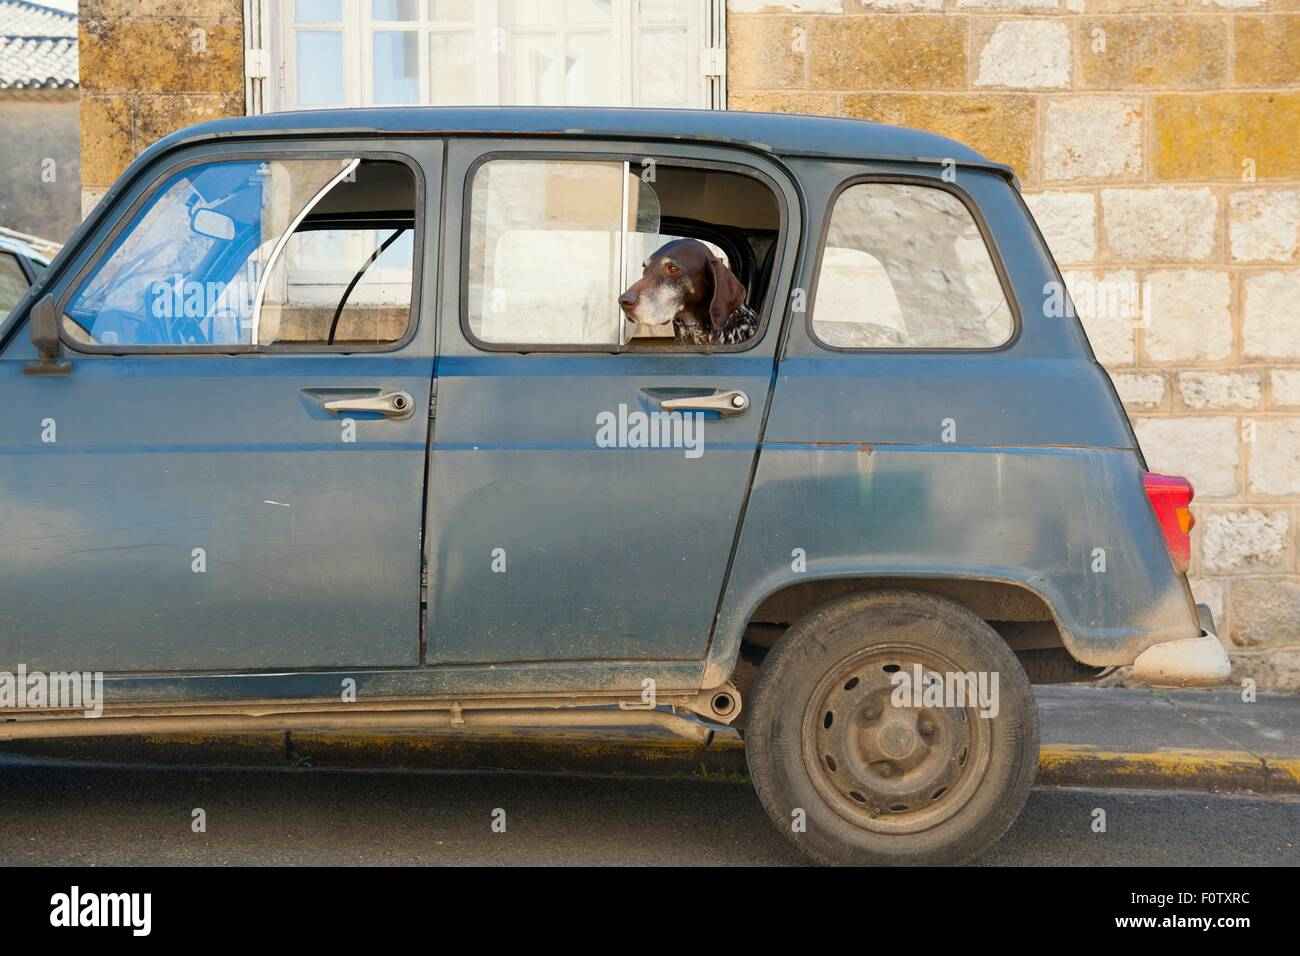 Portrait of dog looking out from parked car window, Monpazier, Dordogne, France - Stock Image